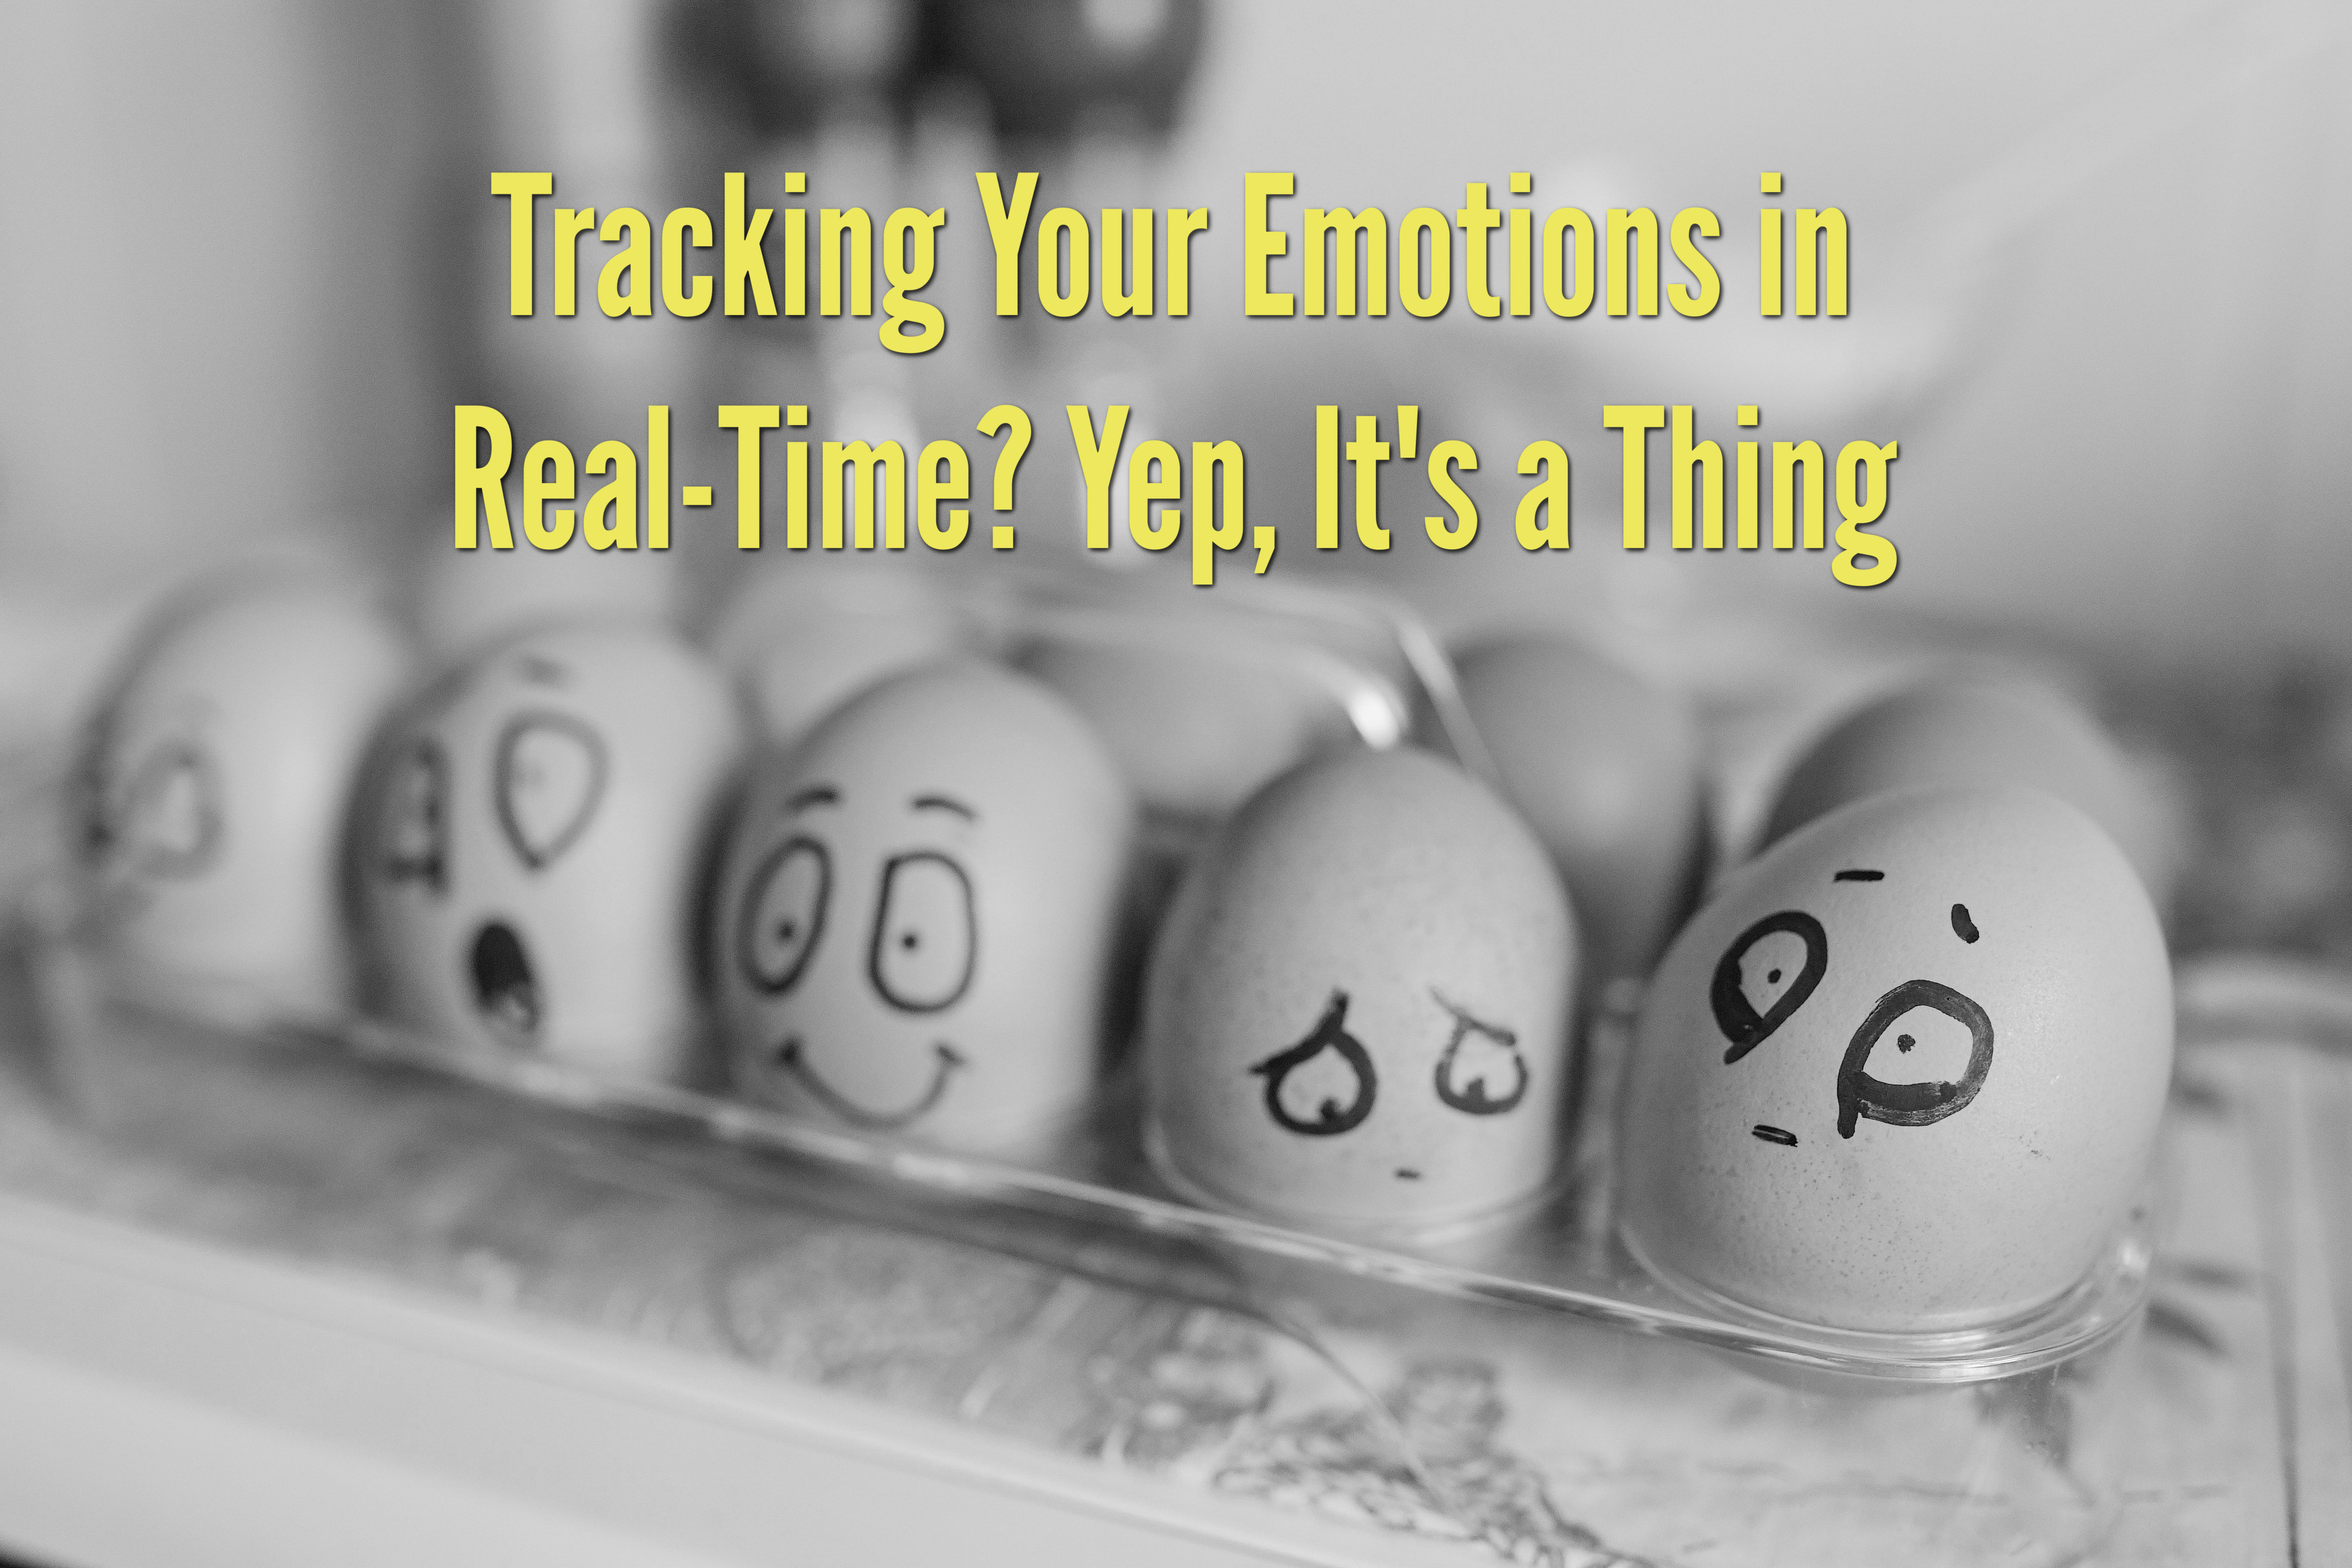 Tracking Your Emotions in Real-Time? Yep, It's a Thing